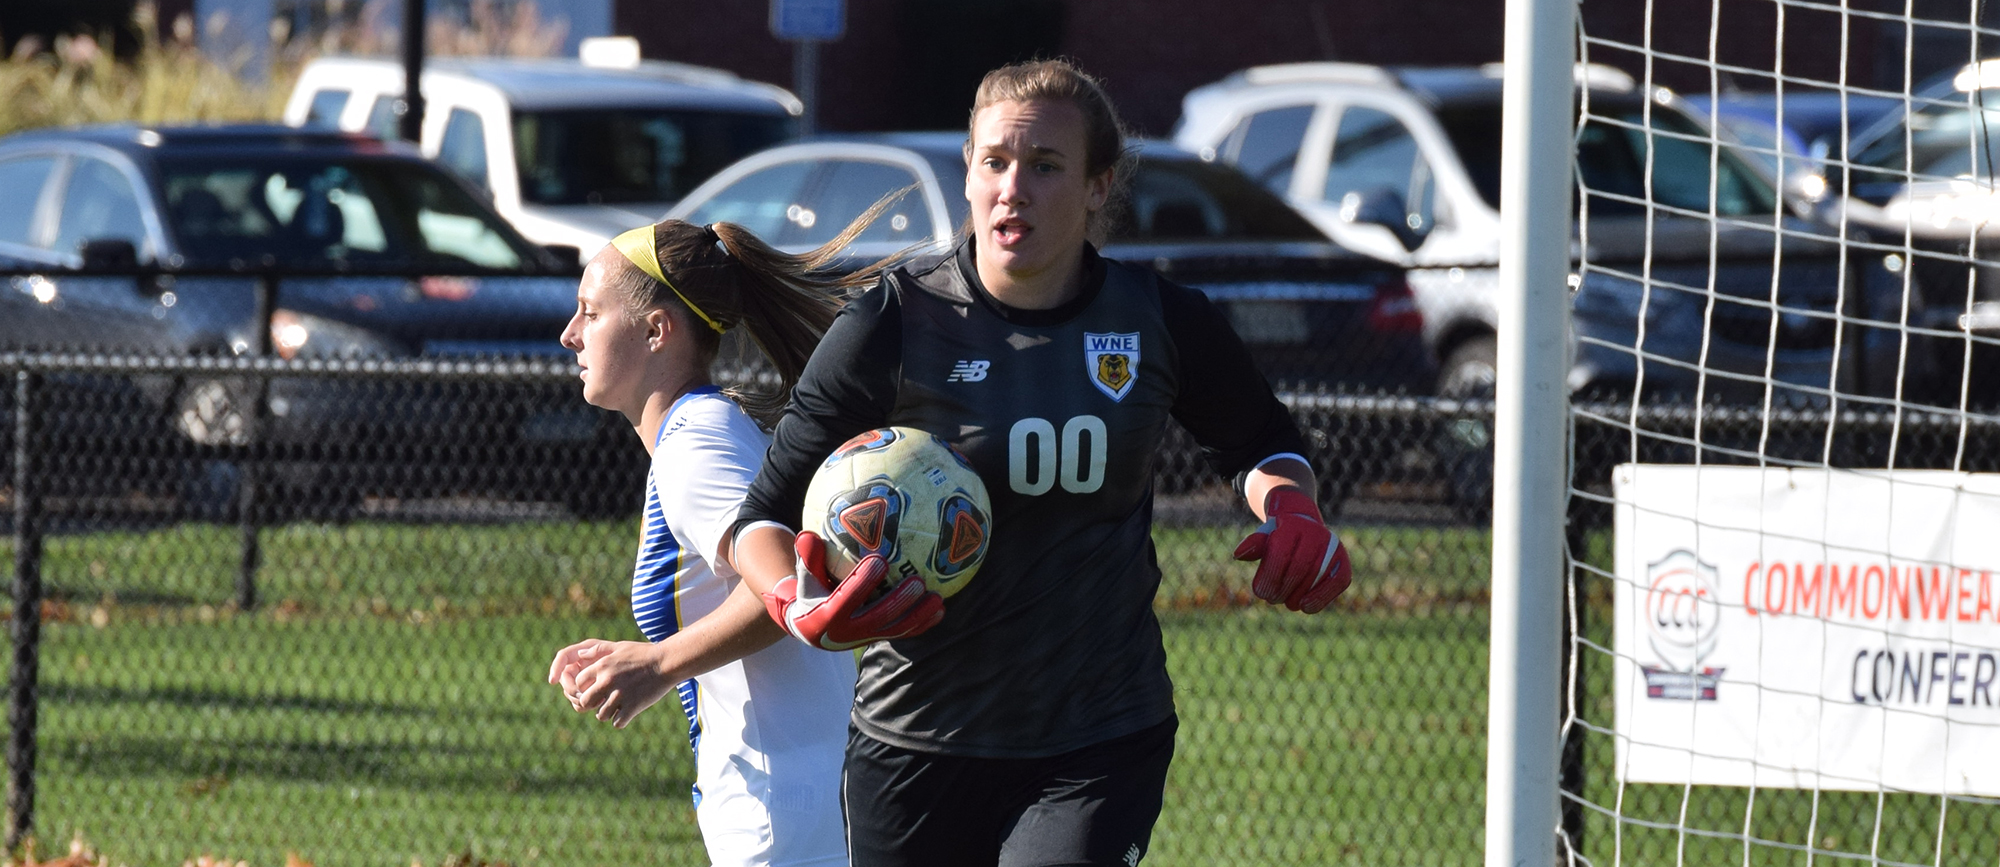 Alex Lemekha made nine saves in her final collegiate contest as Western New England fell to Endicott 1-0 in the CCC Tournament quarterfinals on Saturday. (Photo by Rachael Margossian)